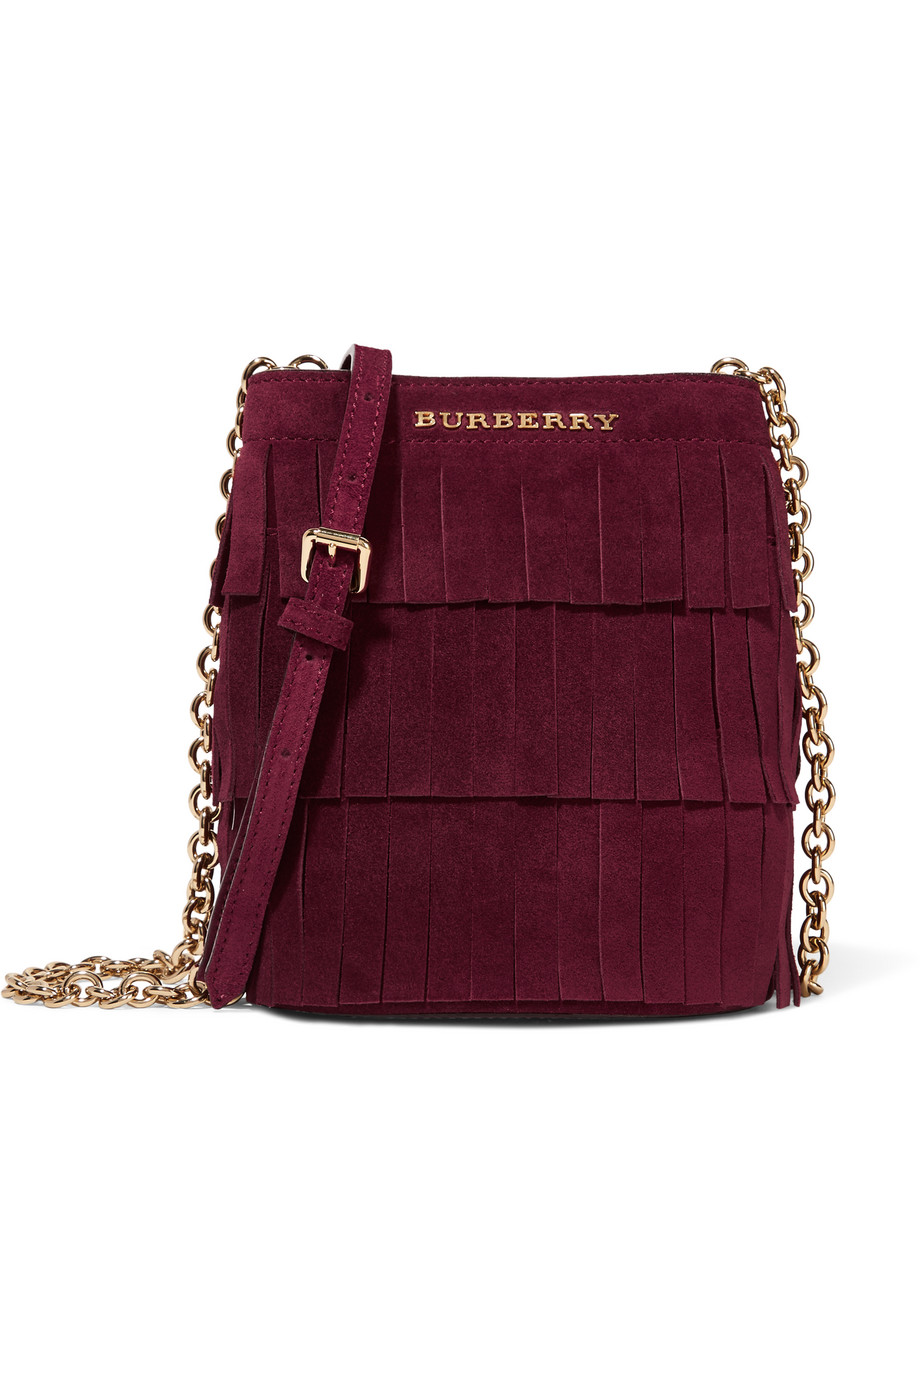 Mini Fringed Suede Bucket Bag, Burberry Prorsum, Burgundy, Women's